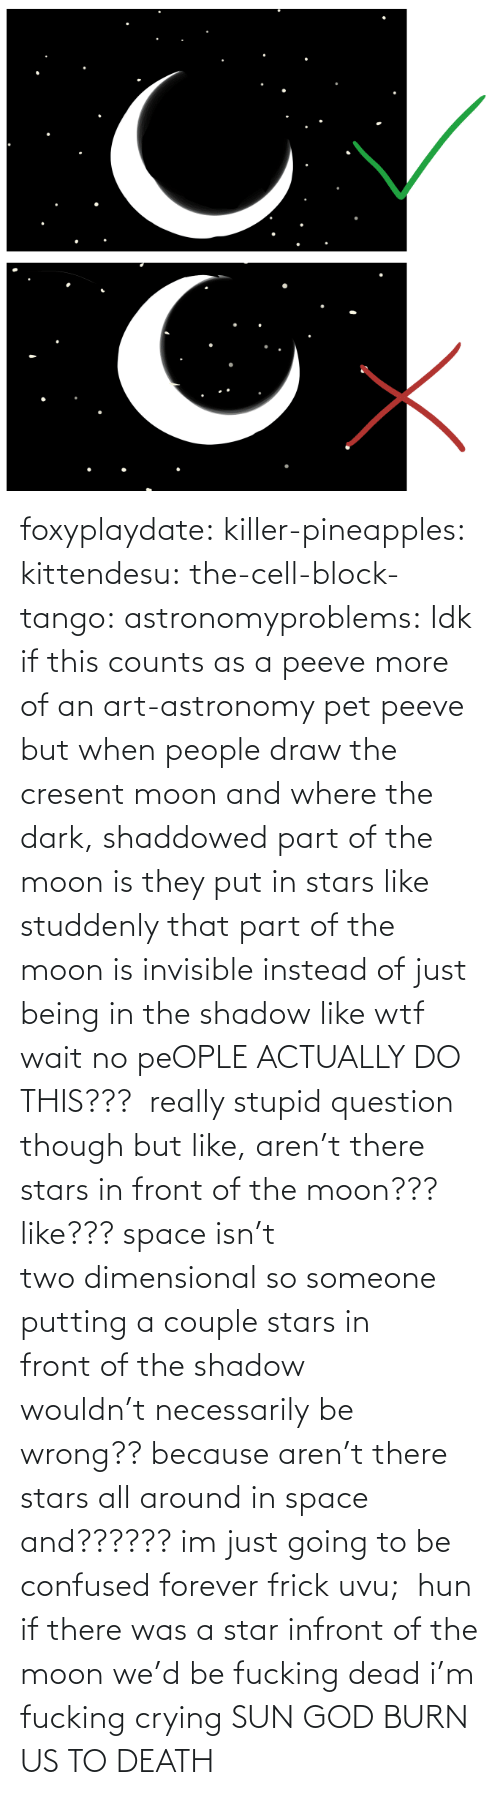 killer: foxyplaydate: killer-pineapples:  kittendesu:  the-cell-block-tango:  astronomyproblems:  Idk if this counts as a peeve more of an art-astronomy pet peeve but when people draw the cresent moon and where the dark, shaddowed part of the moon is they put in stars like studdenly that part of the moon is invisible instead of just being in the shadow like wtf  wait no peOPLE ACTUALLY DO THIS???   really stupid question though but like, aren't there stars in front of the moon??? like??? space isn't two dimensional so someone putting a couple stars in front of the shadow wouldn't necessarily be wrong?? because aren't there stars all around in space and?????? im just going to be confused forever frick uvu;   hun if there was a star infront of the moon we'd be fucking dead  i'm fucking crying    SUN GOD BURN US TO DEATH